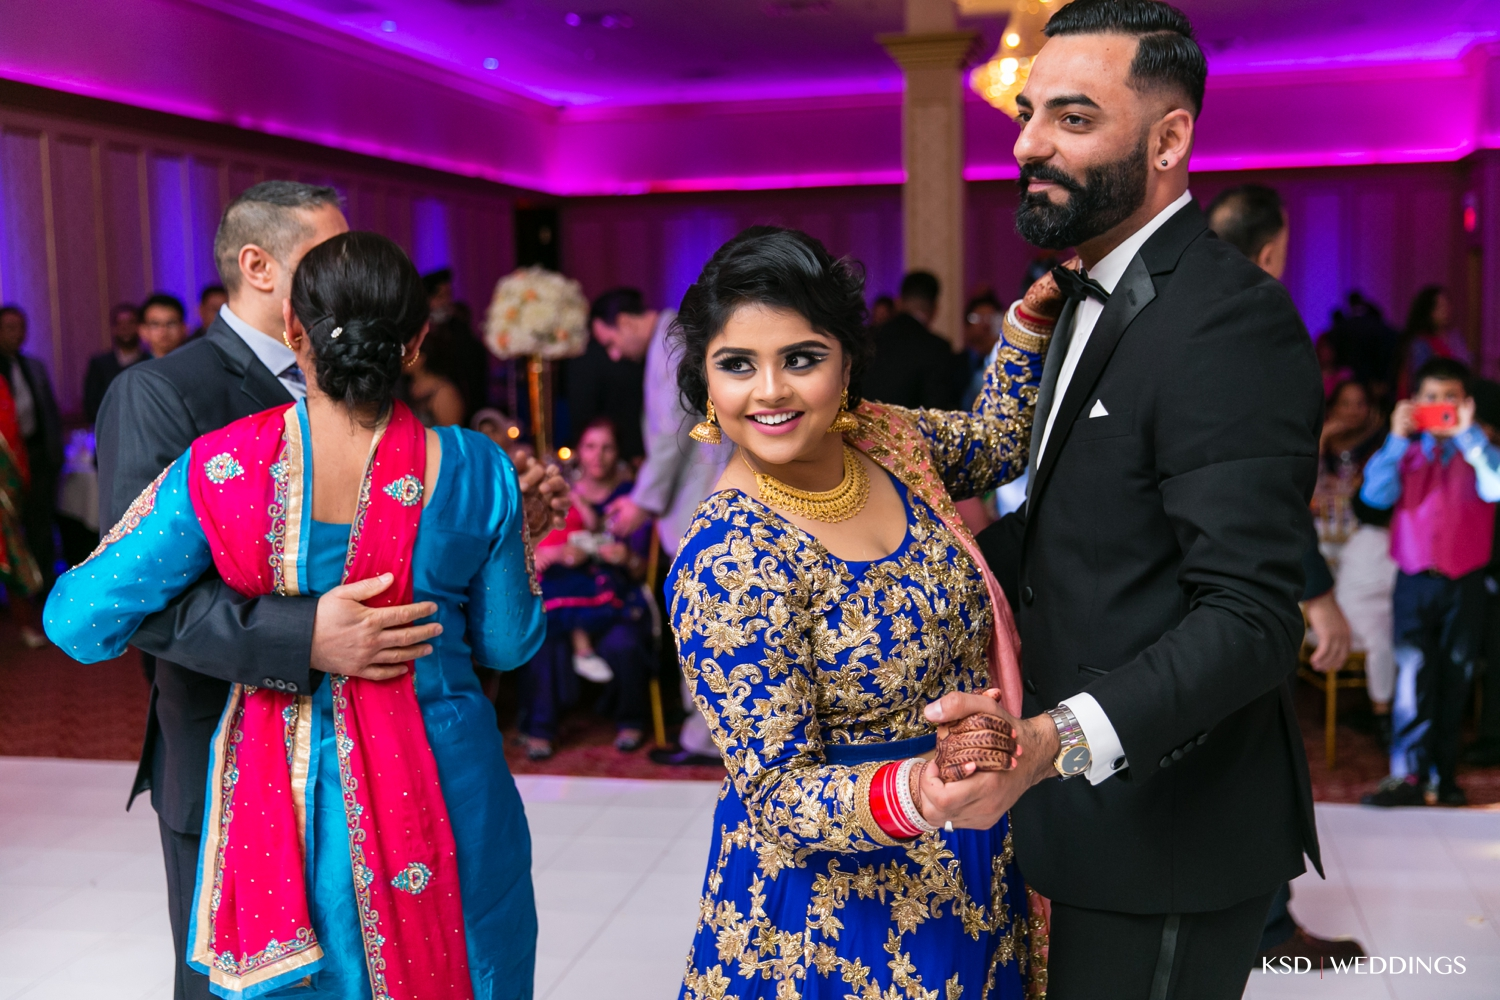 Dewan_Banquet_NJ_Wedding_0078